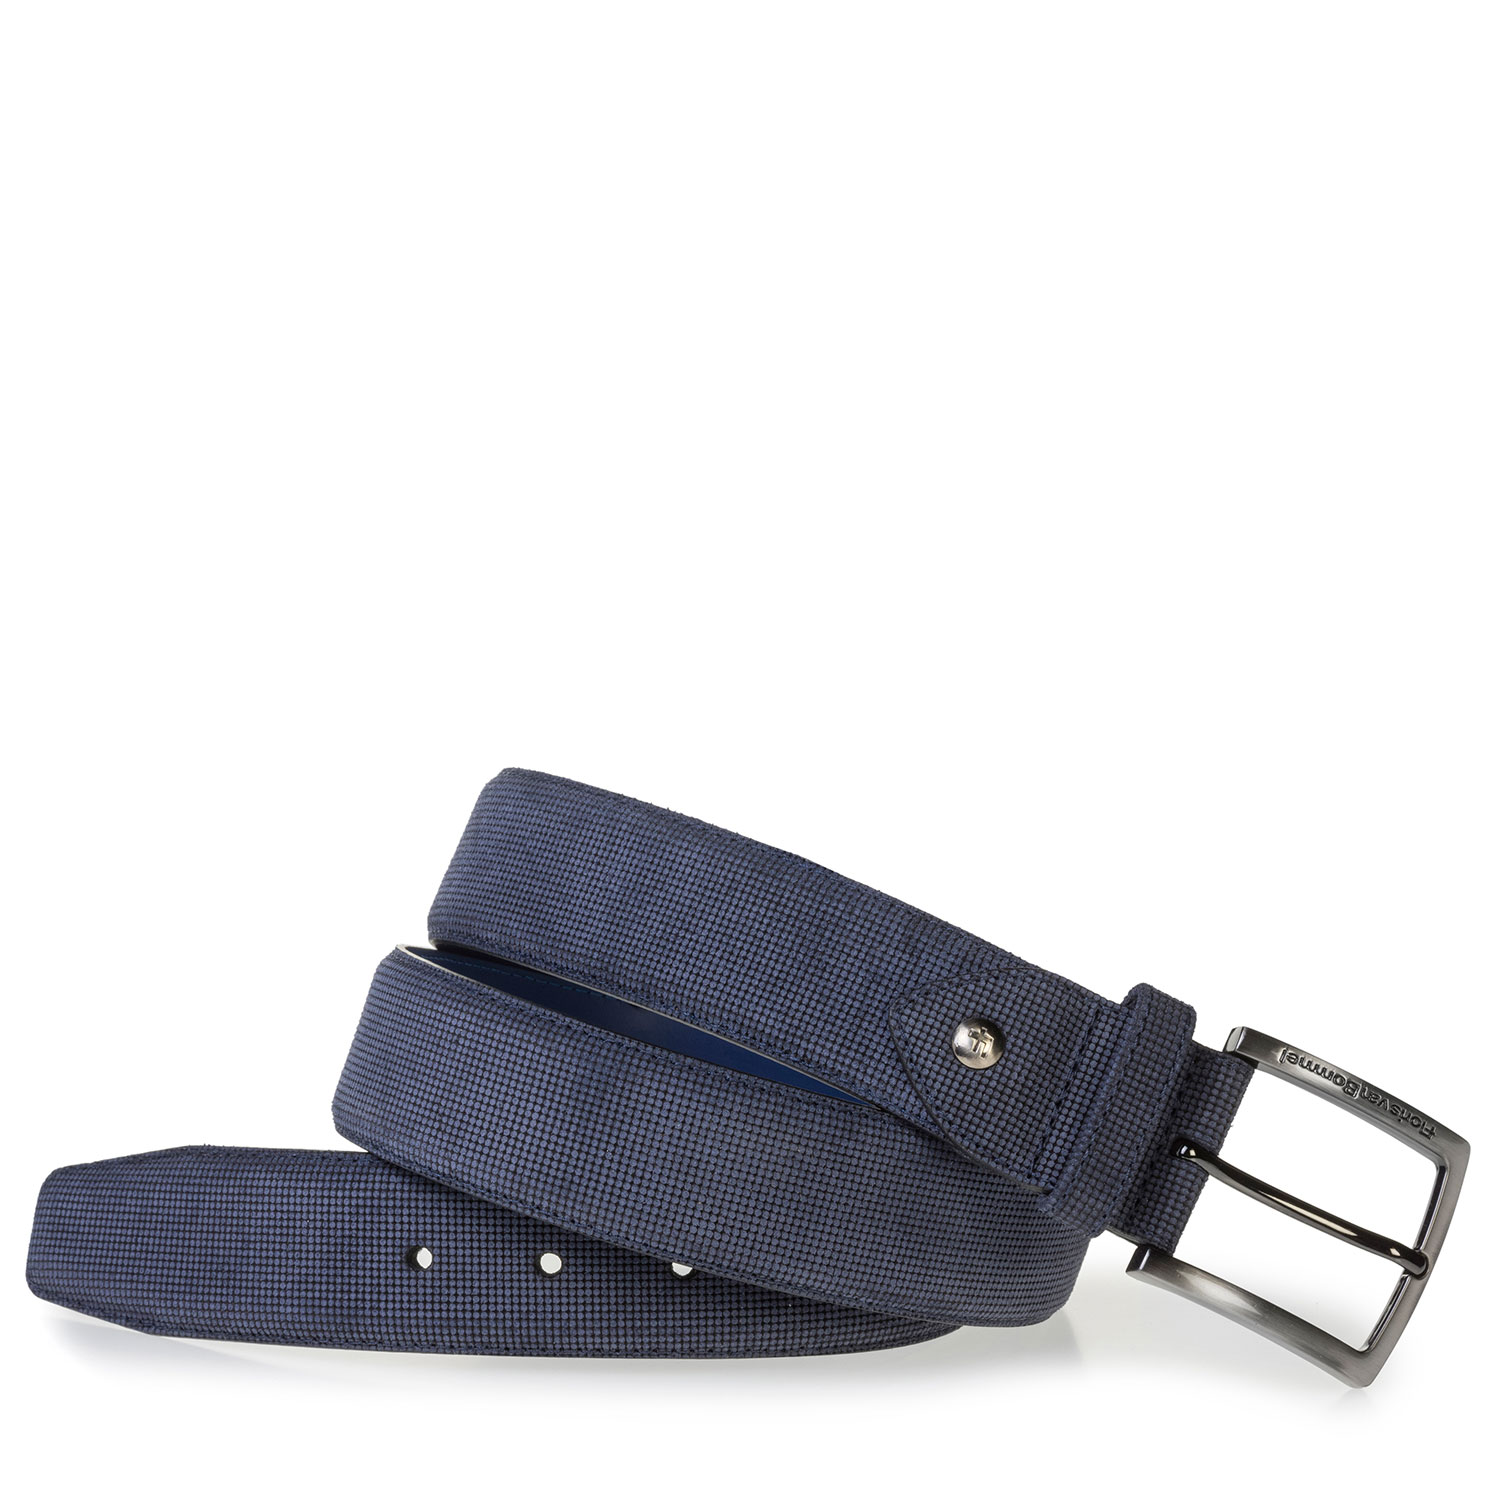 75202/53 - Blue suede leather belt with print